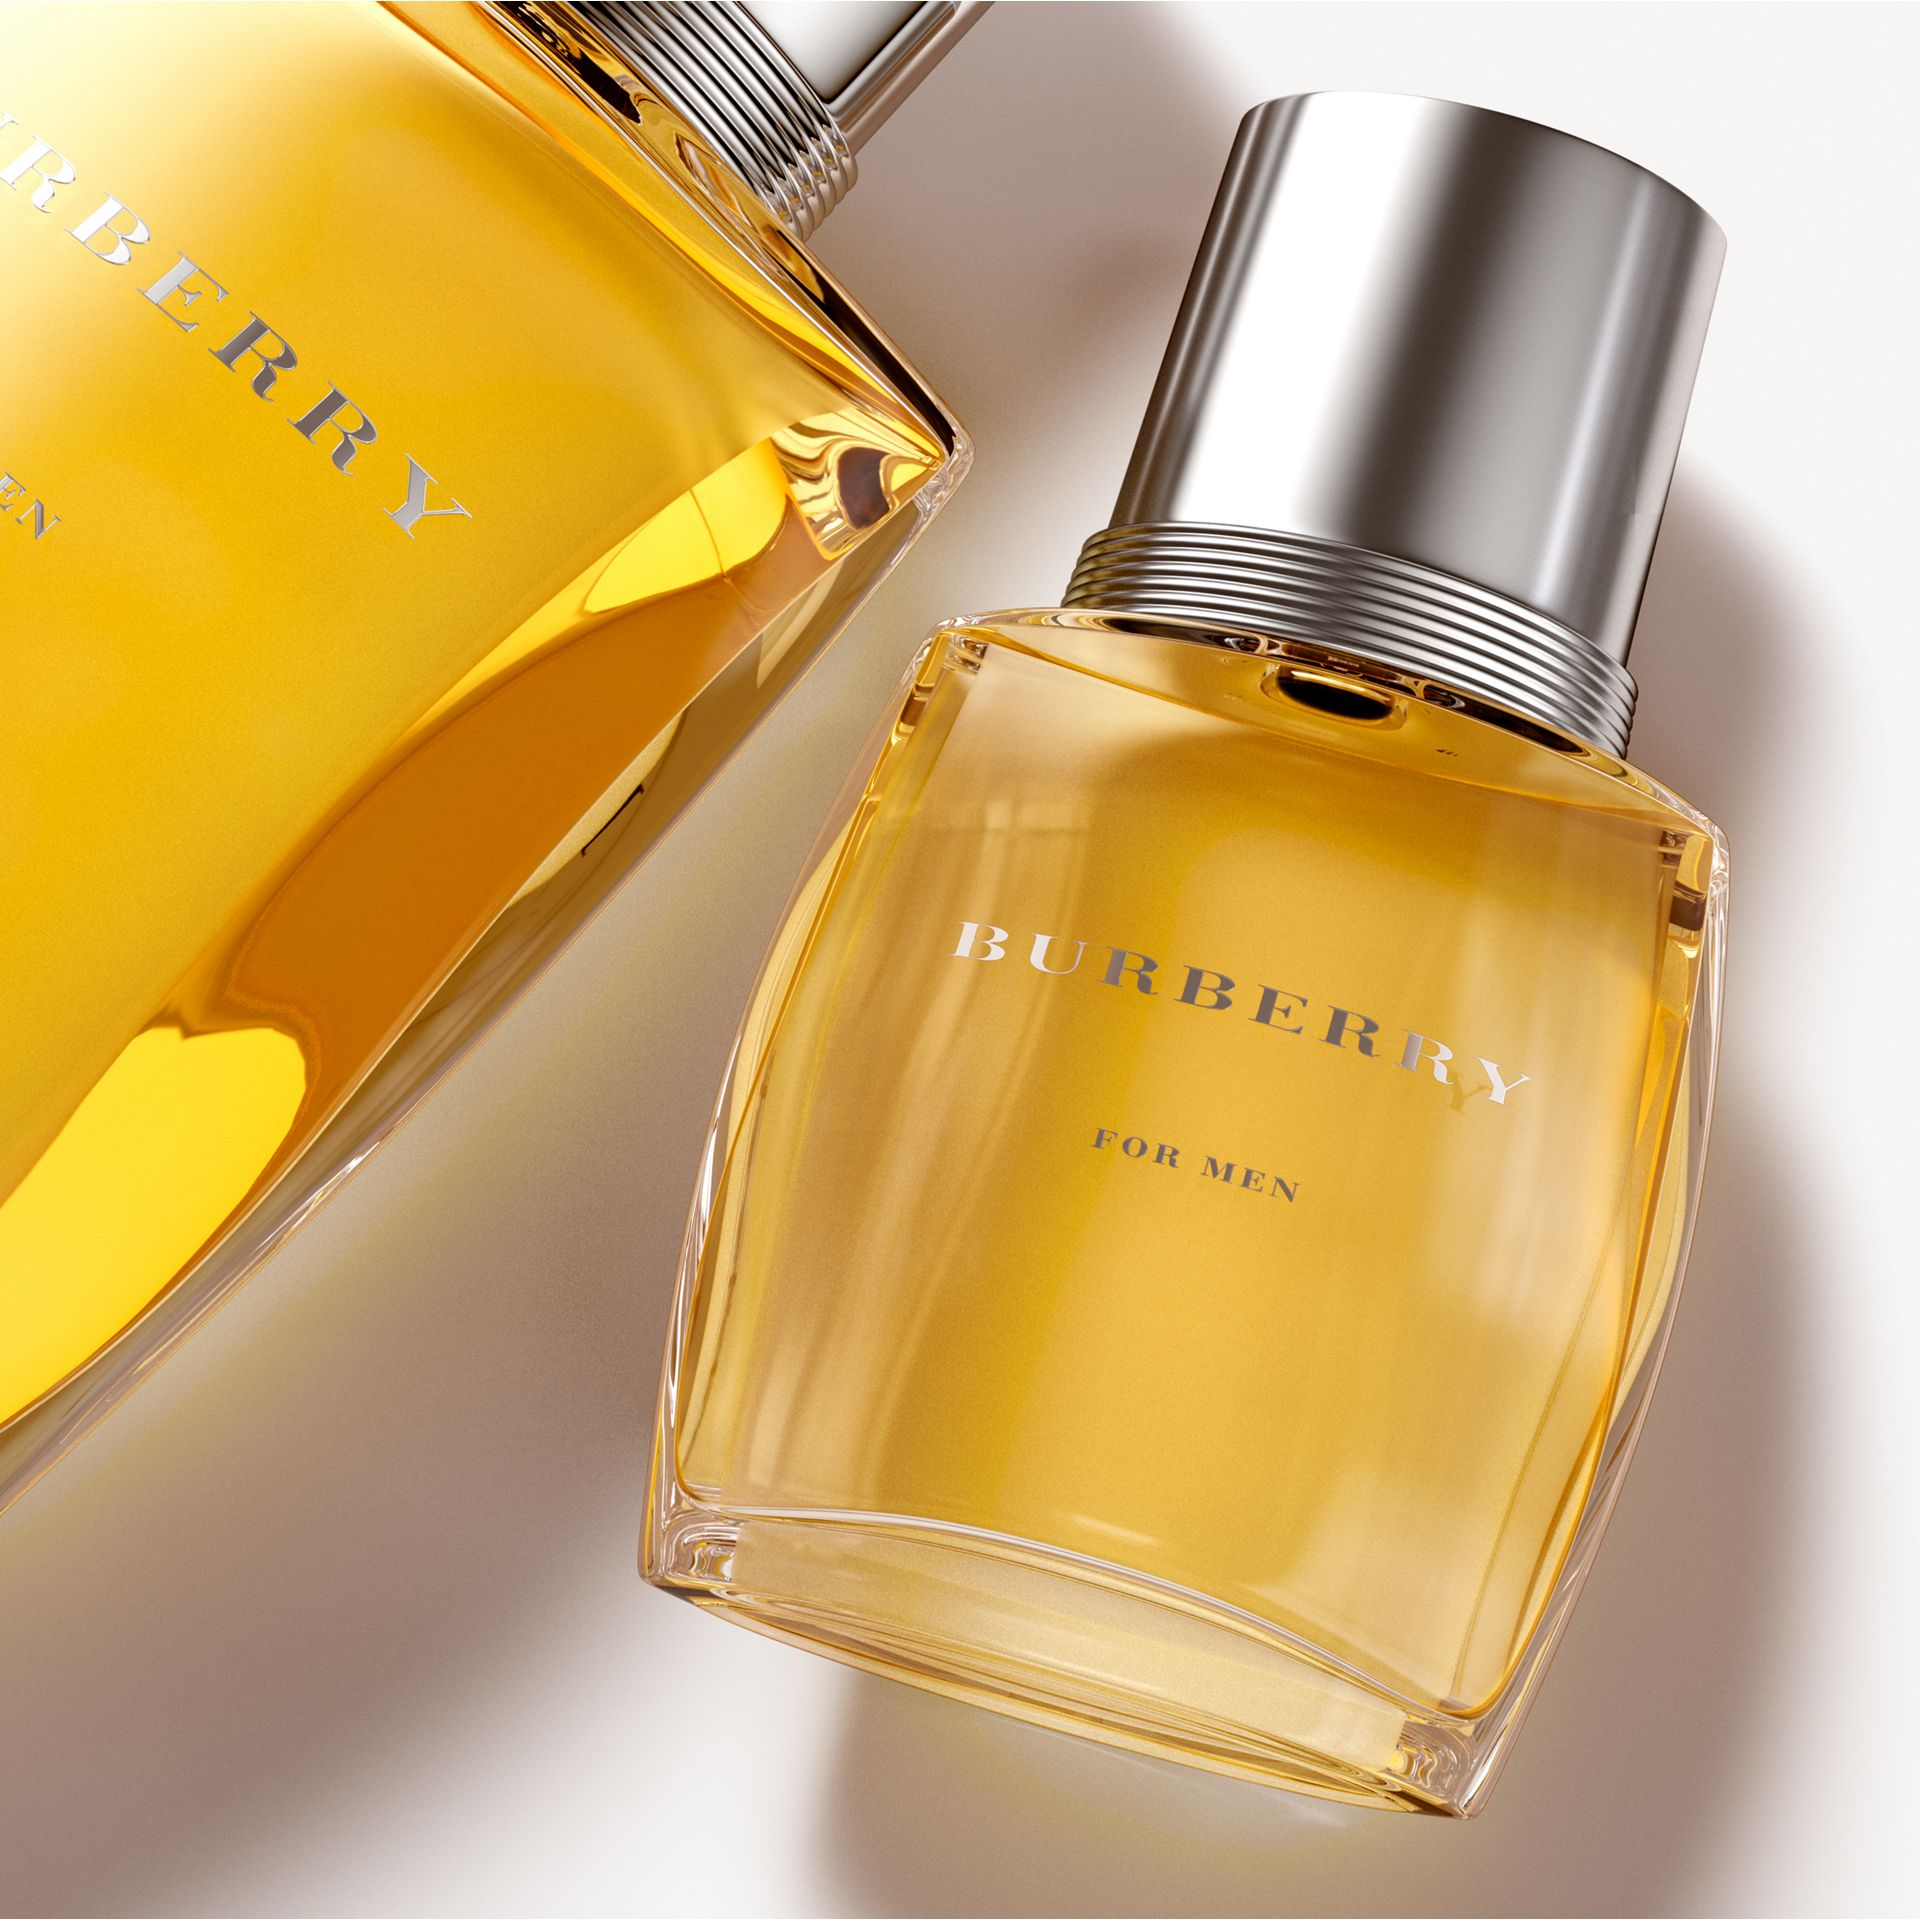 Burberry For Men Eau De Toilette 30ml - Men | Burberry Australia - gallery image 1